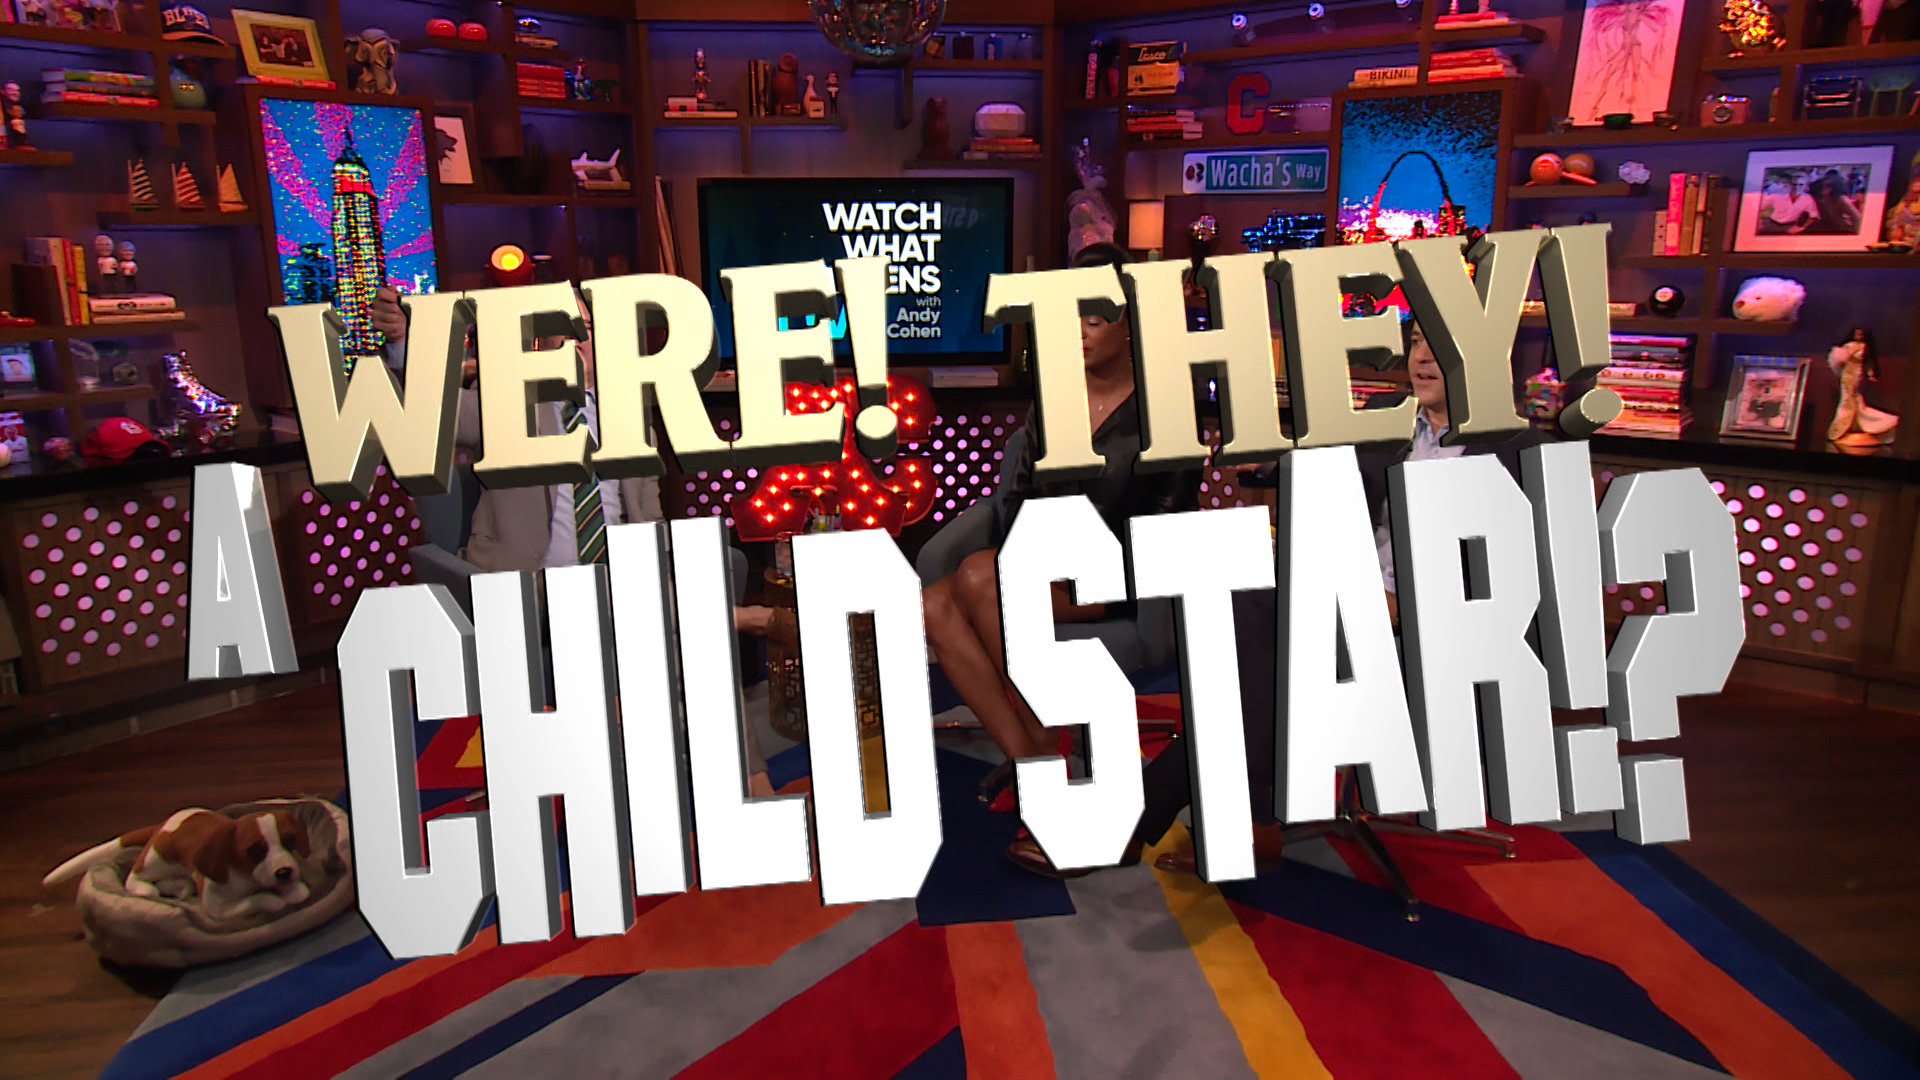 Aisha Tyler & Fred Savage Play 'Were They a Child Star!?'